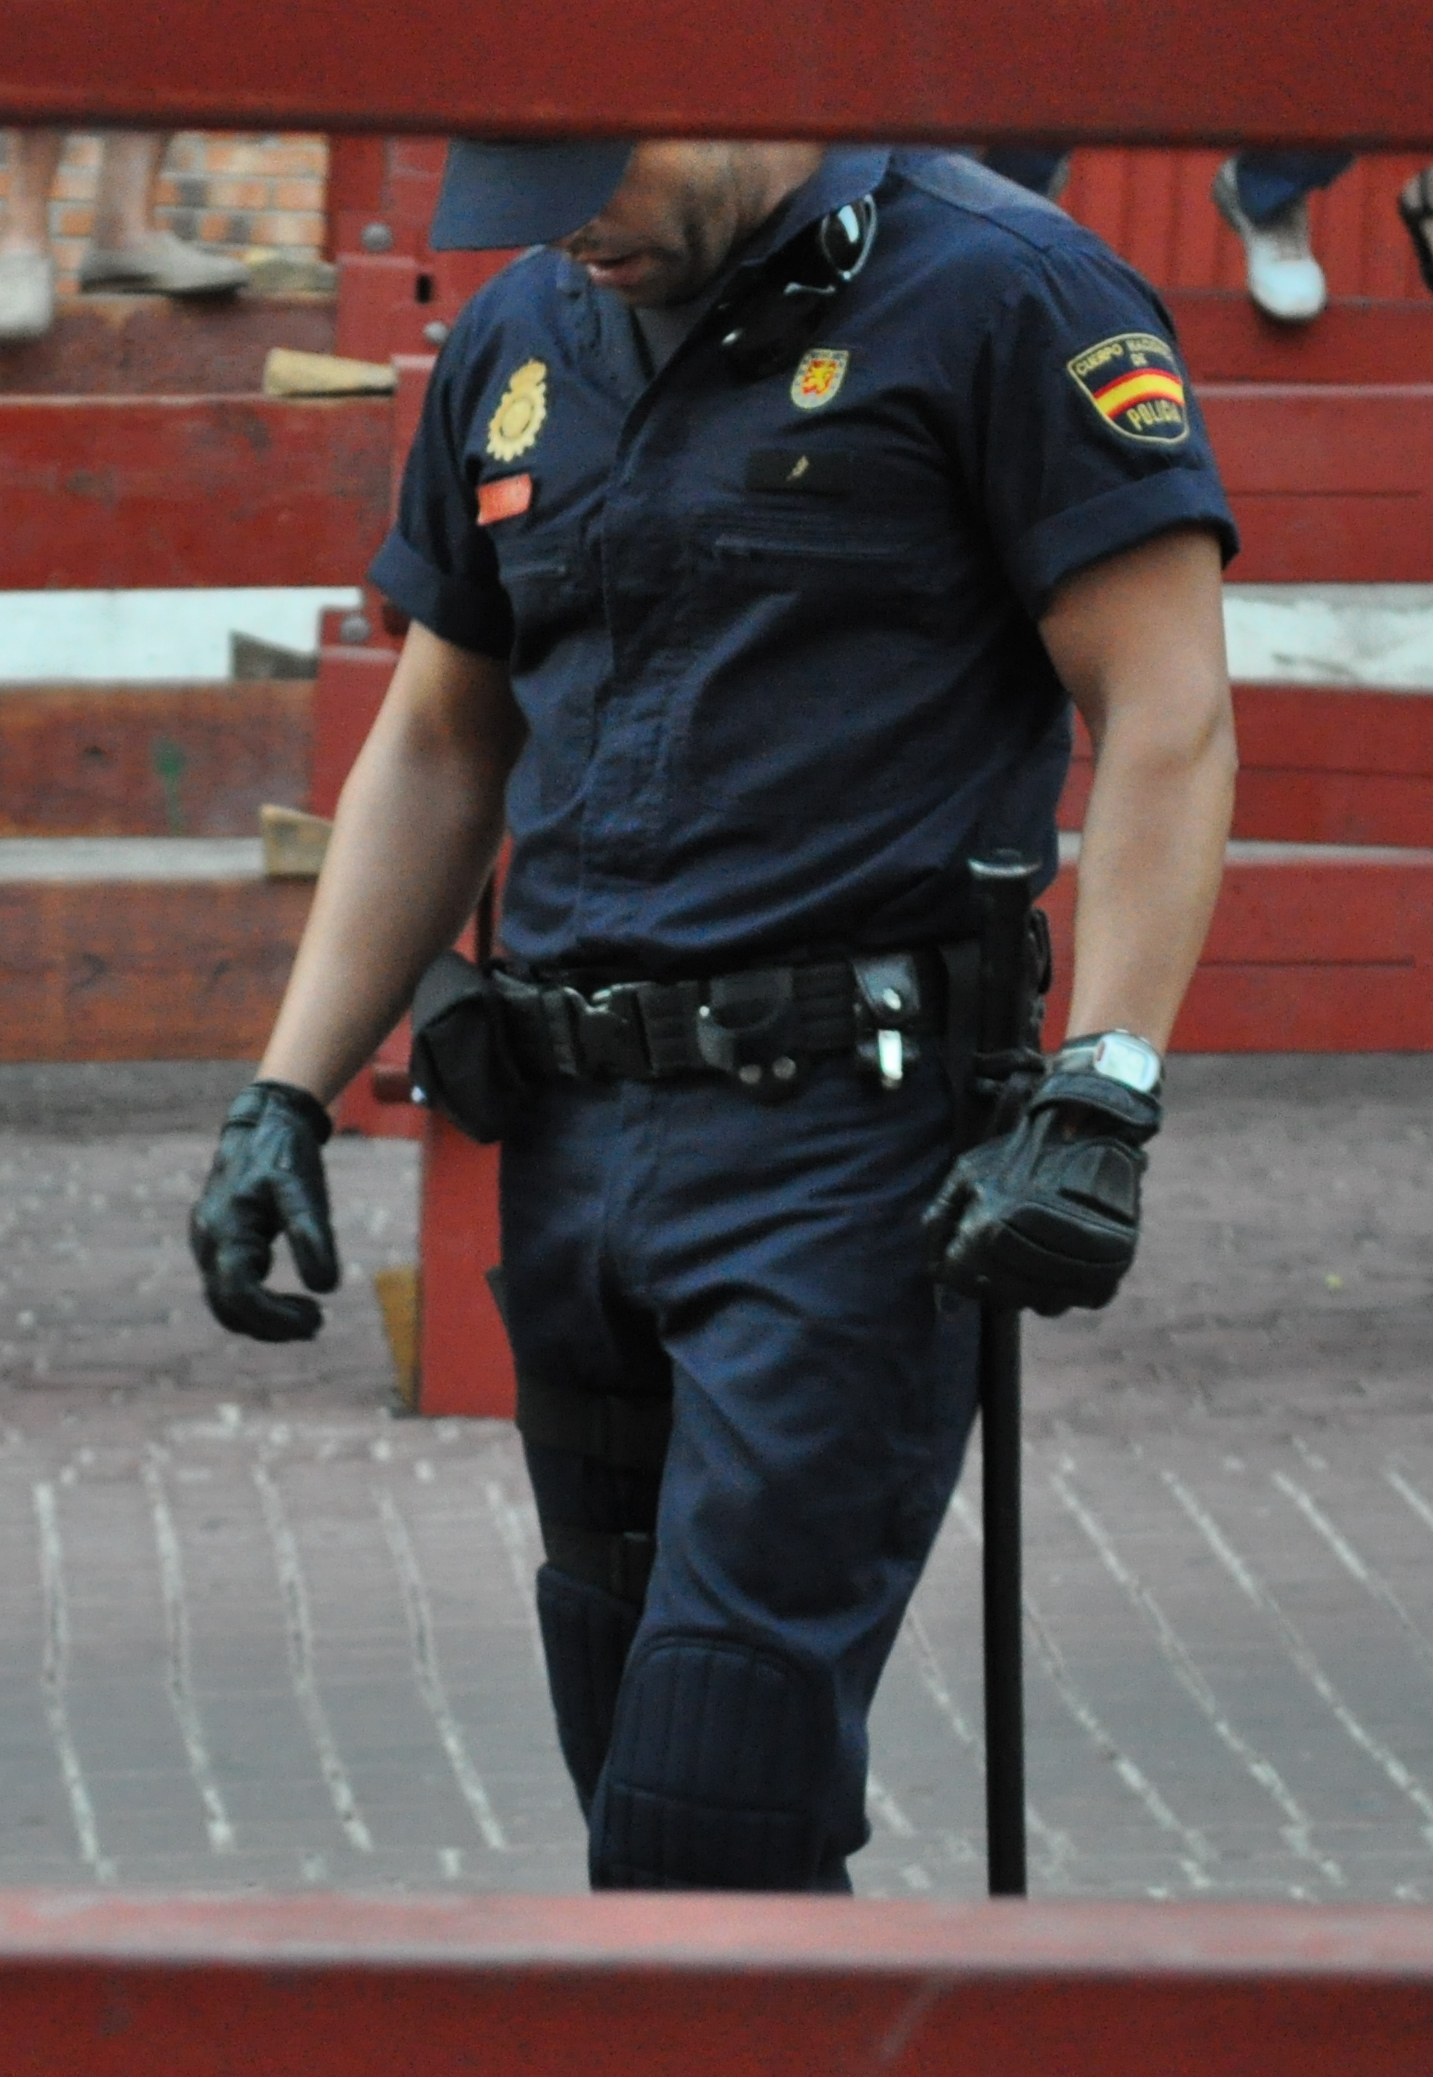 Unidentifiable Spanish Riot Police